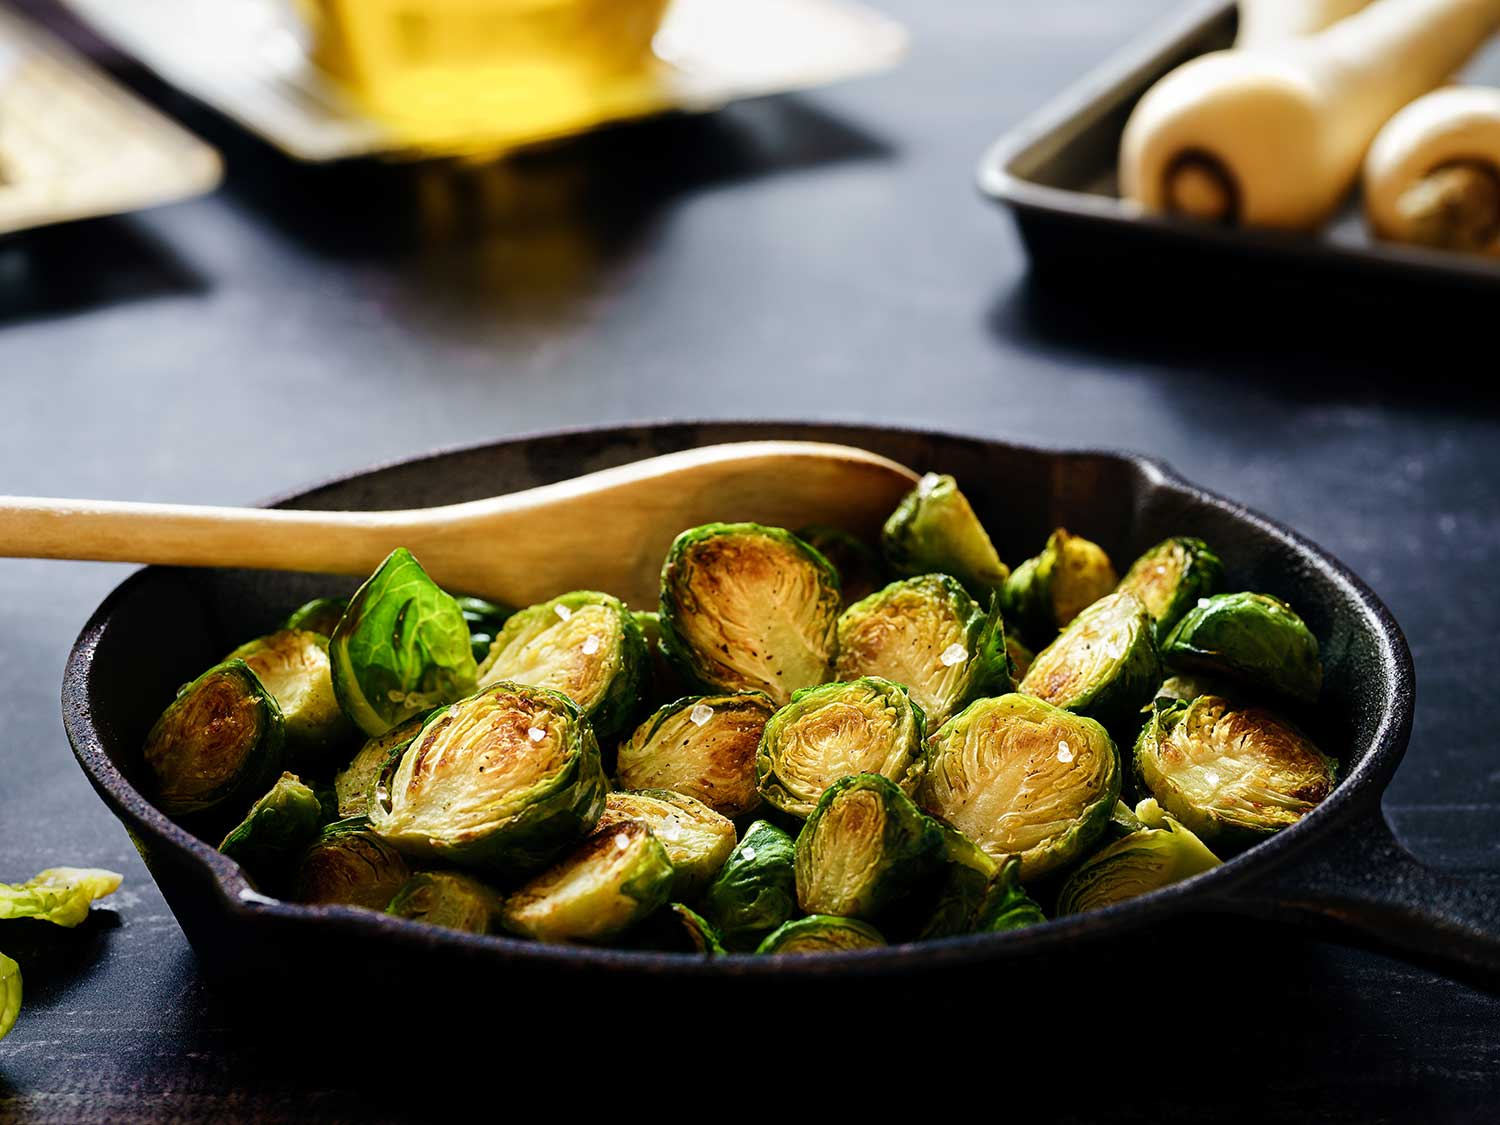 Cast iron skillet with brussels sprouts.